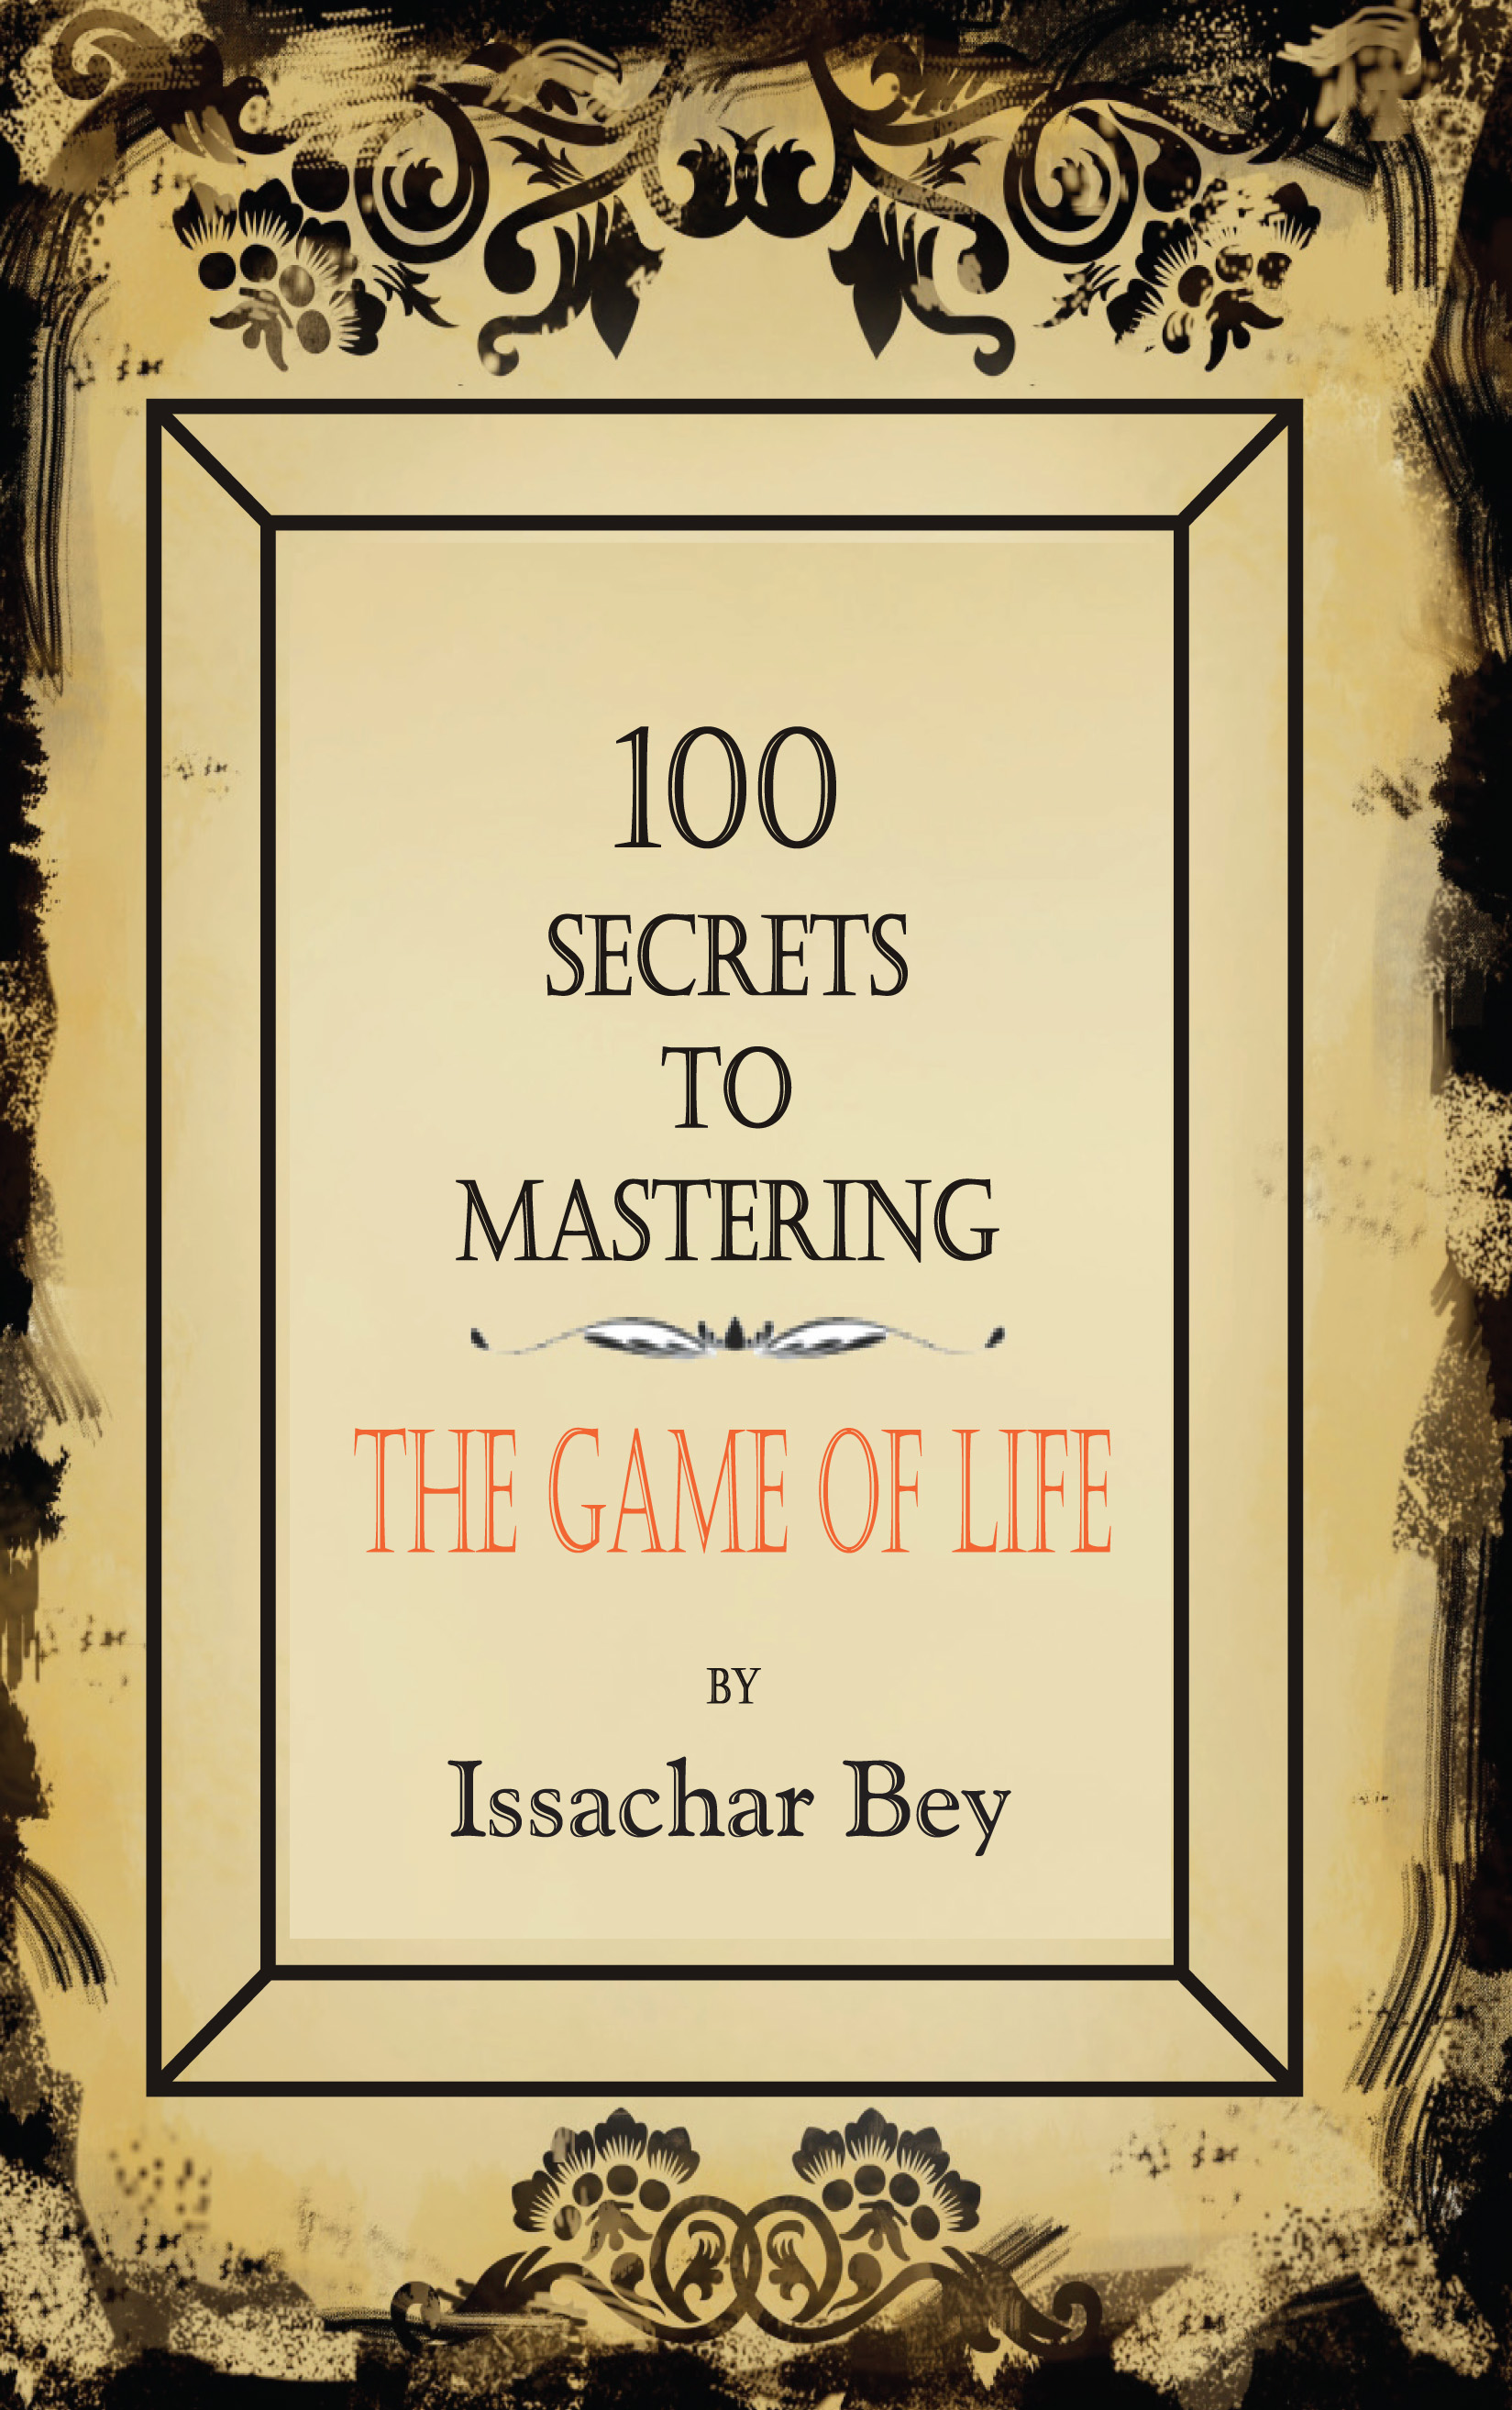 100 Secrets to Mastering the Game of Life